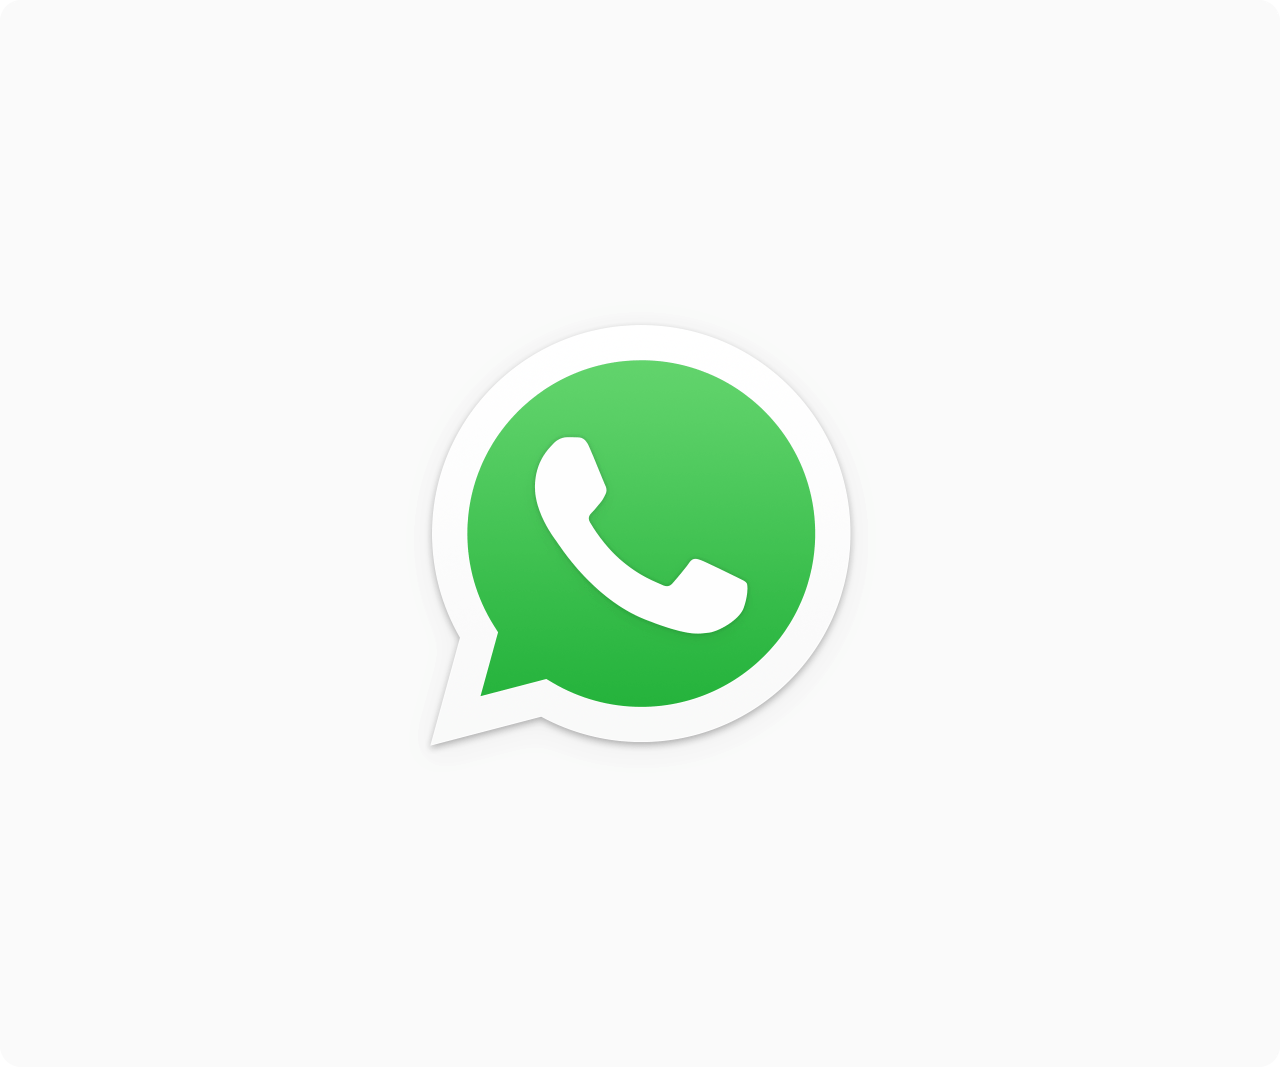 Logo do WhatsApp PNG [Fundo Transparente e com Fundo].